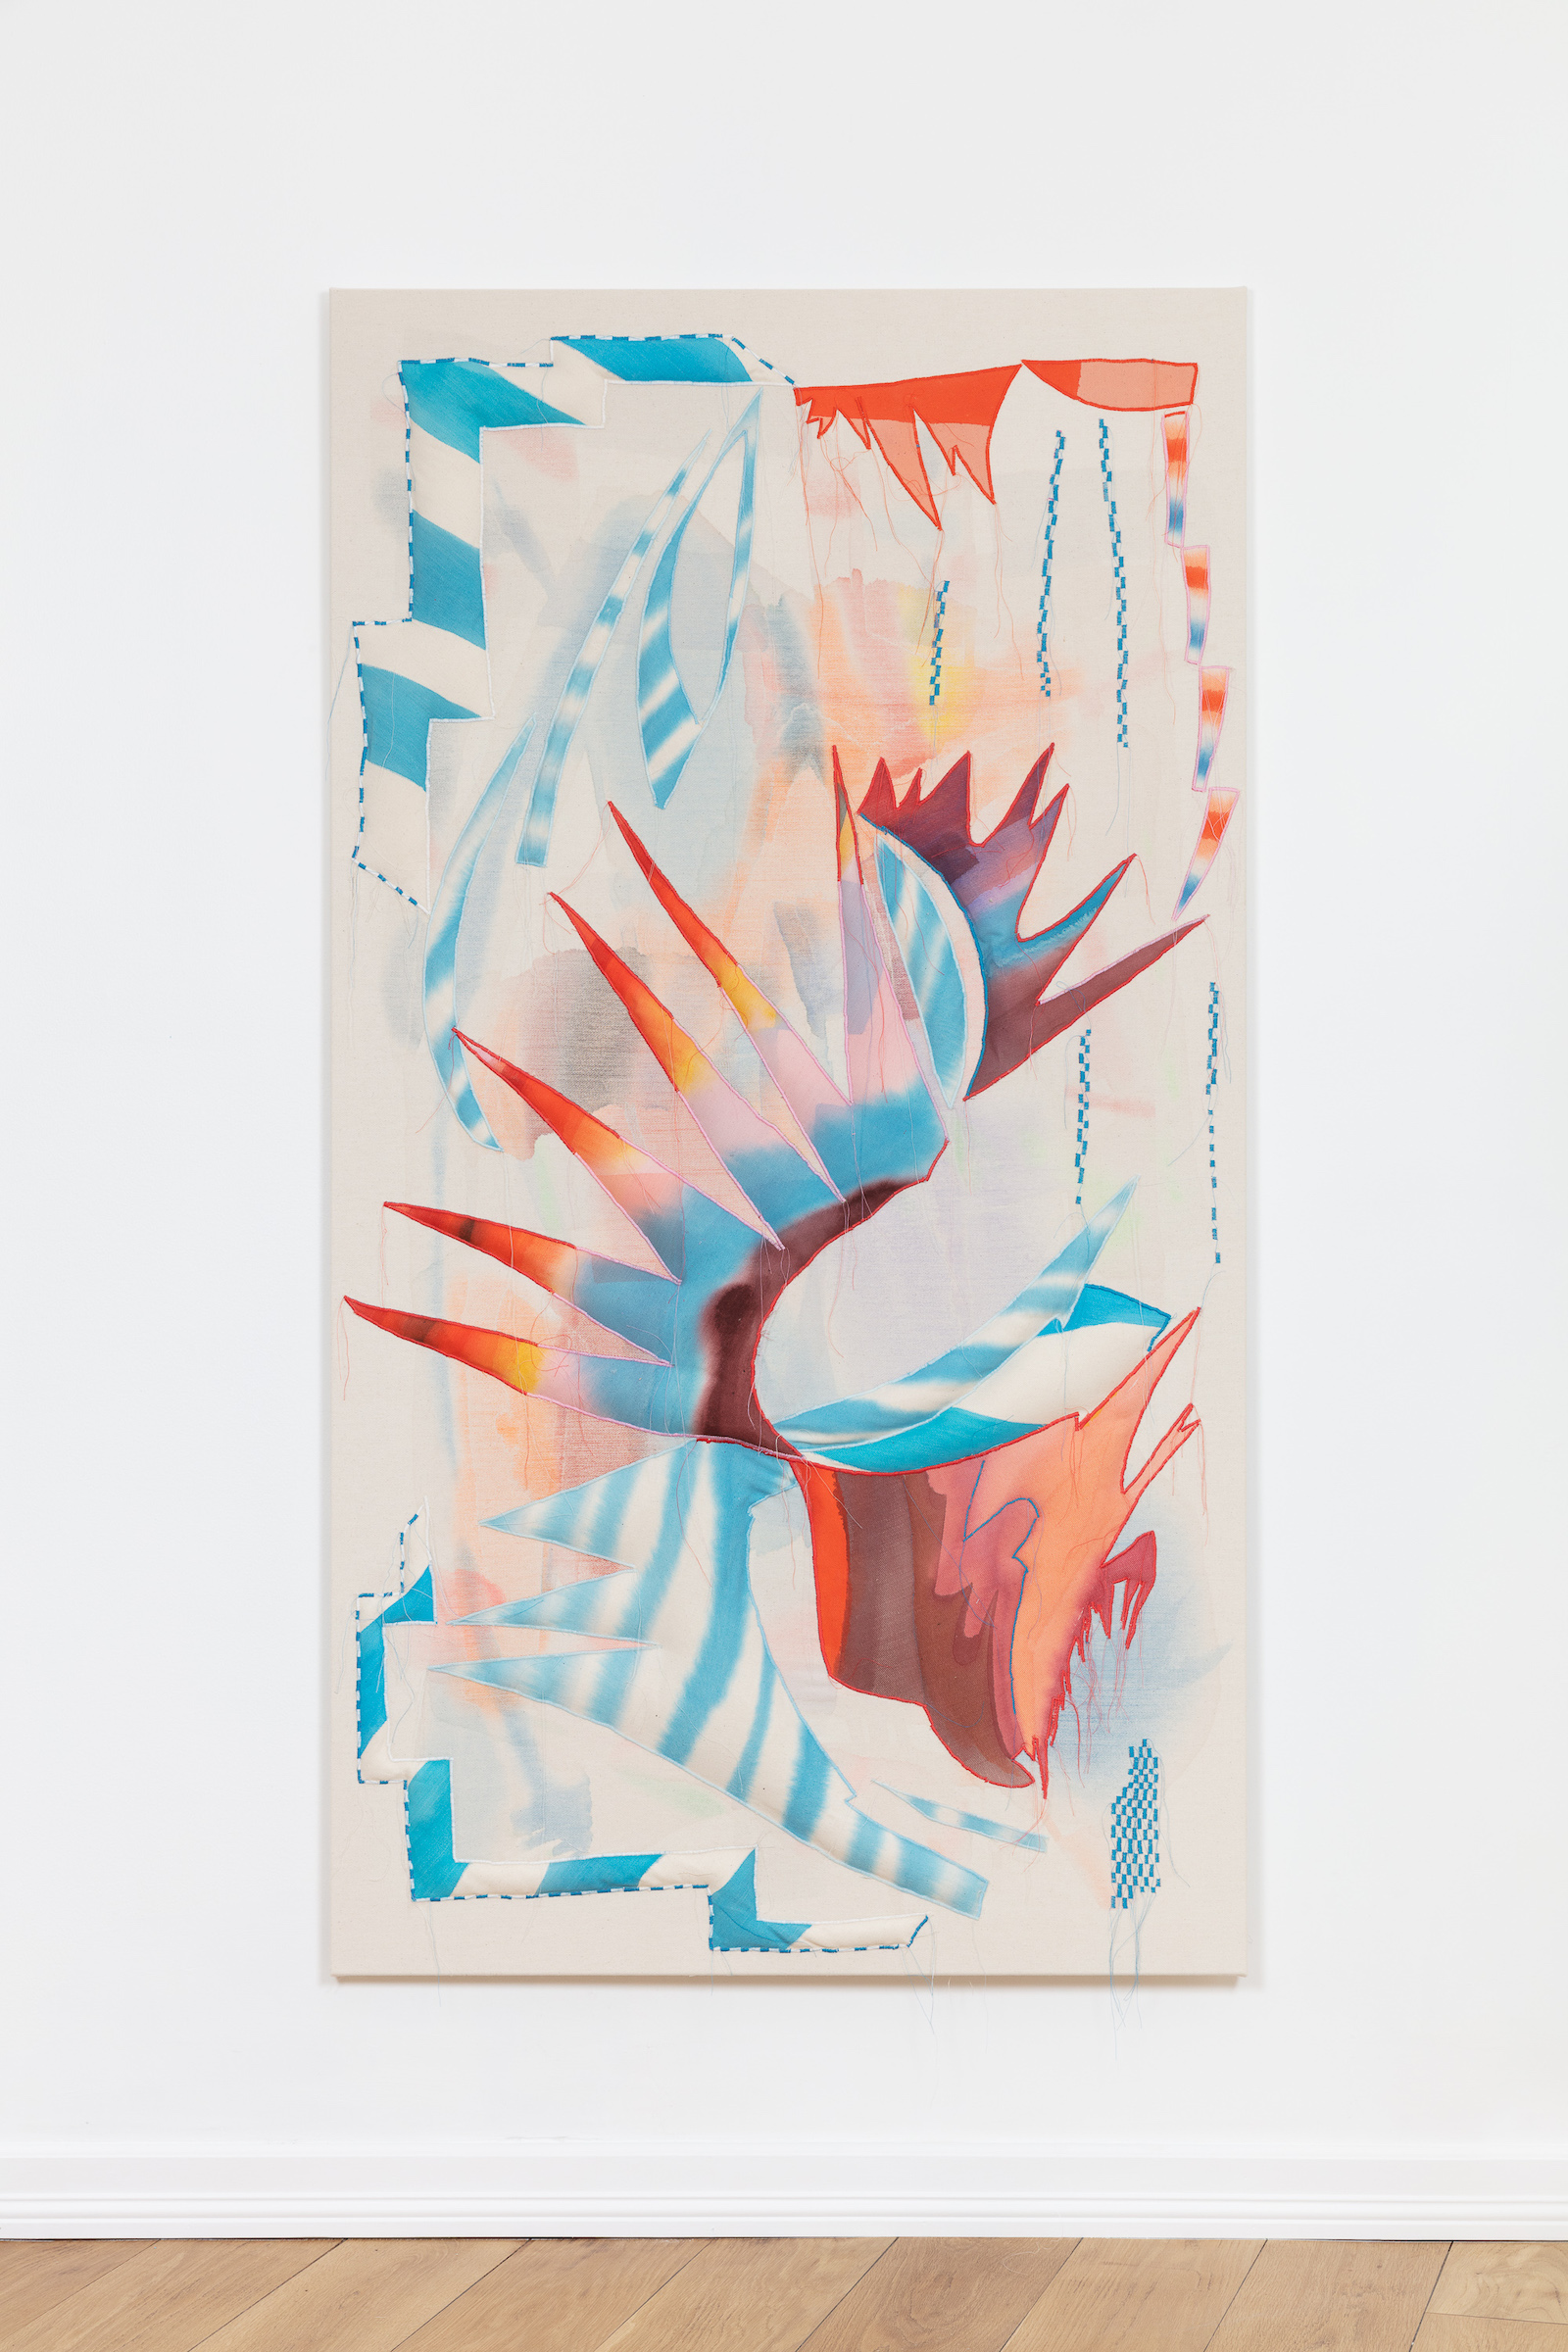 Liv Tandrevold Eriksen, Queens Rooster, 2021, diluted acrylic on sewn cotton canvas, 175 x 95 cm